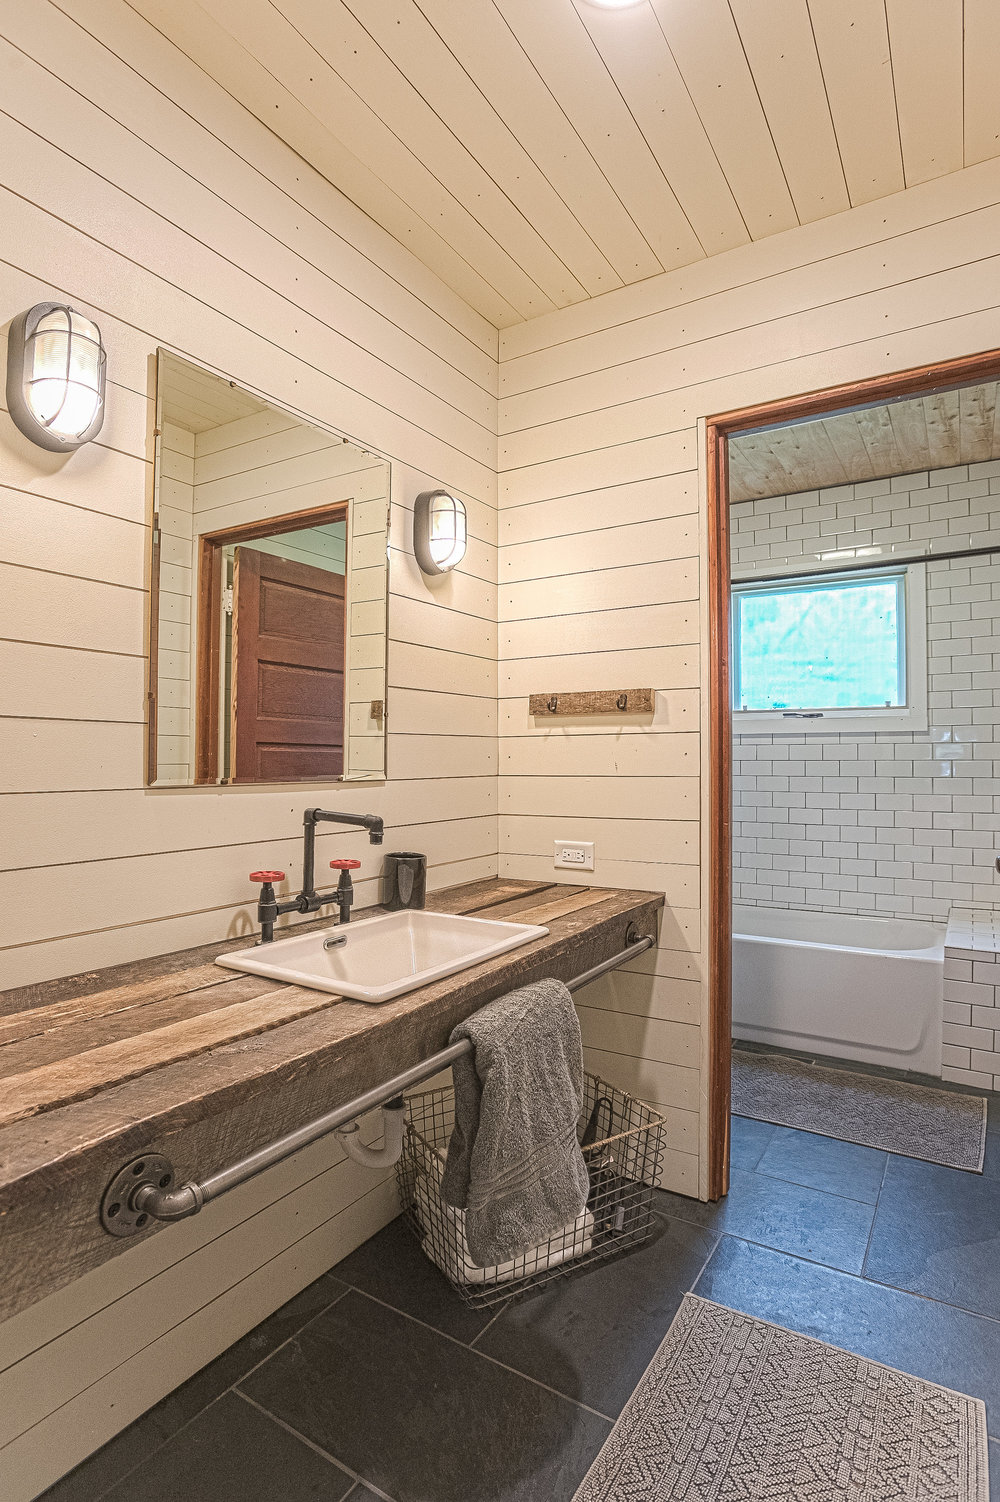 Main house guest bathroom with lots of character including steam punk faucet, reclaimed timber vanity and subway tile.  Brushing your teeth has never been so much fun!